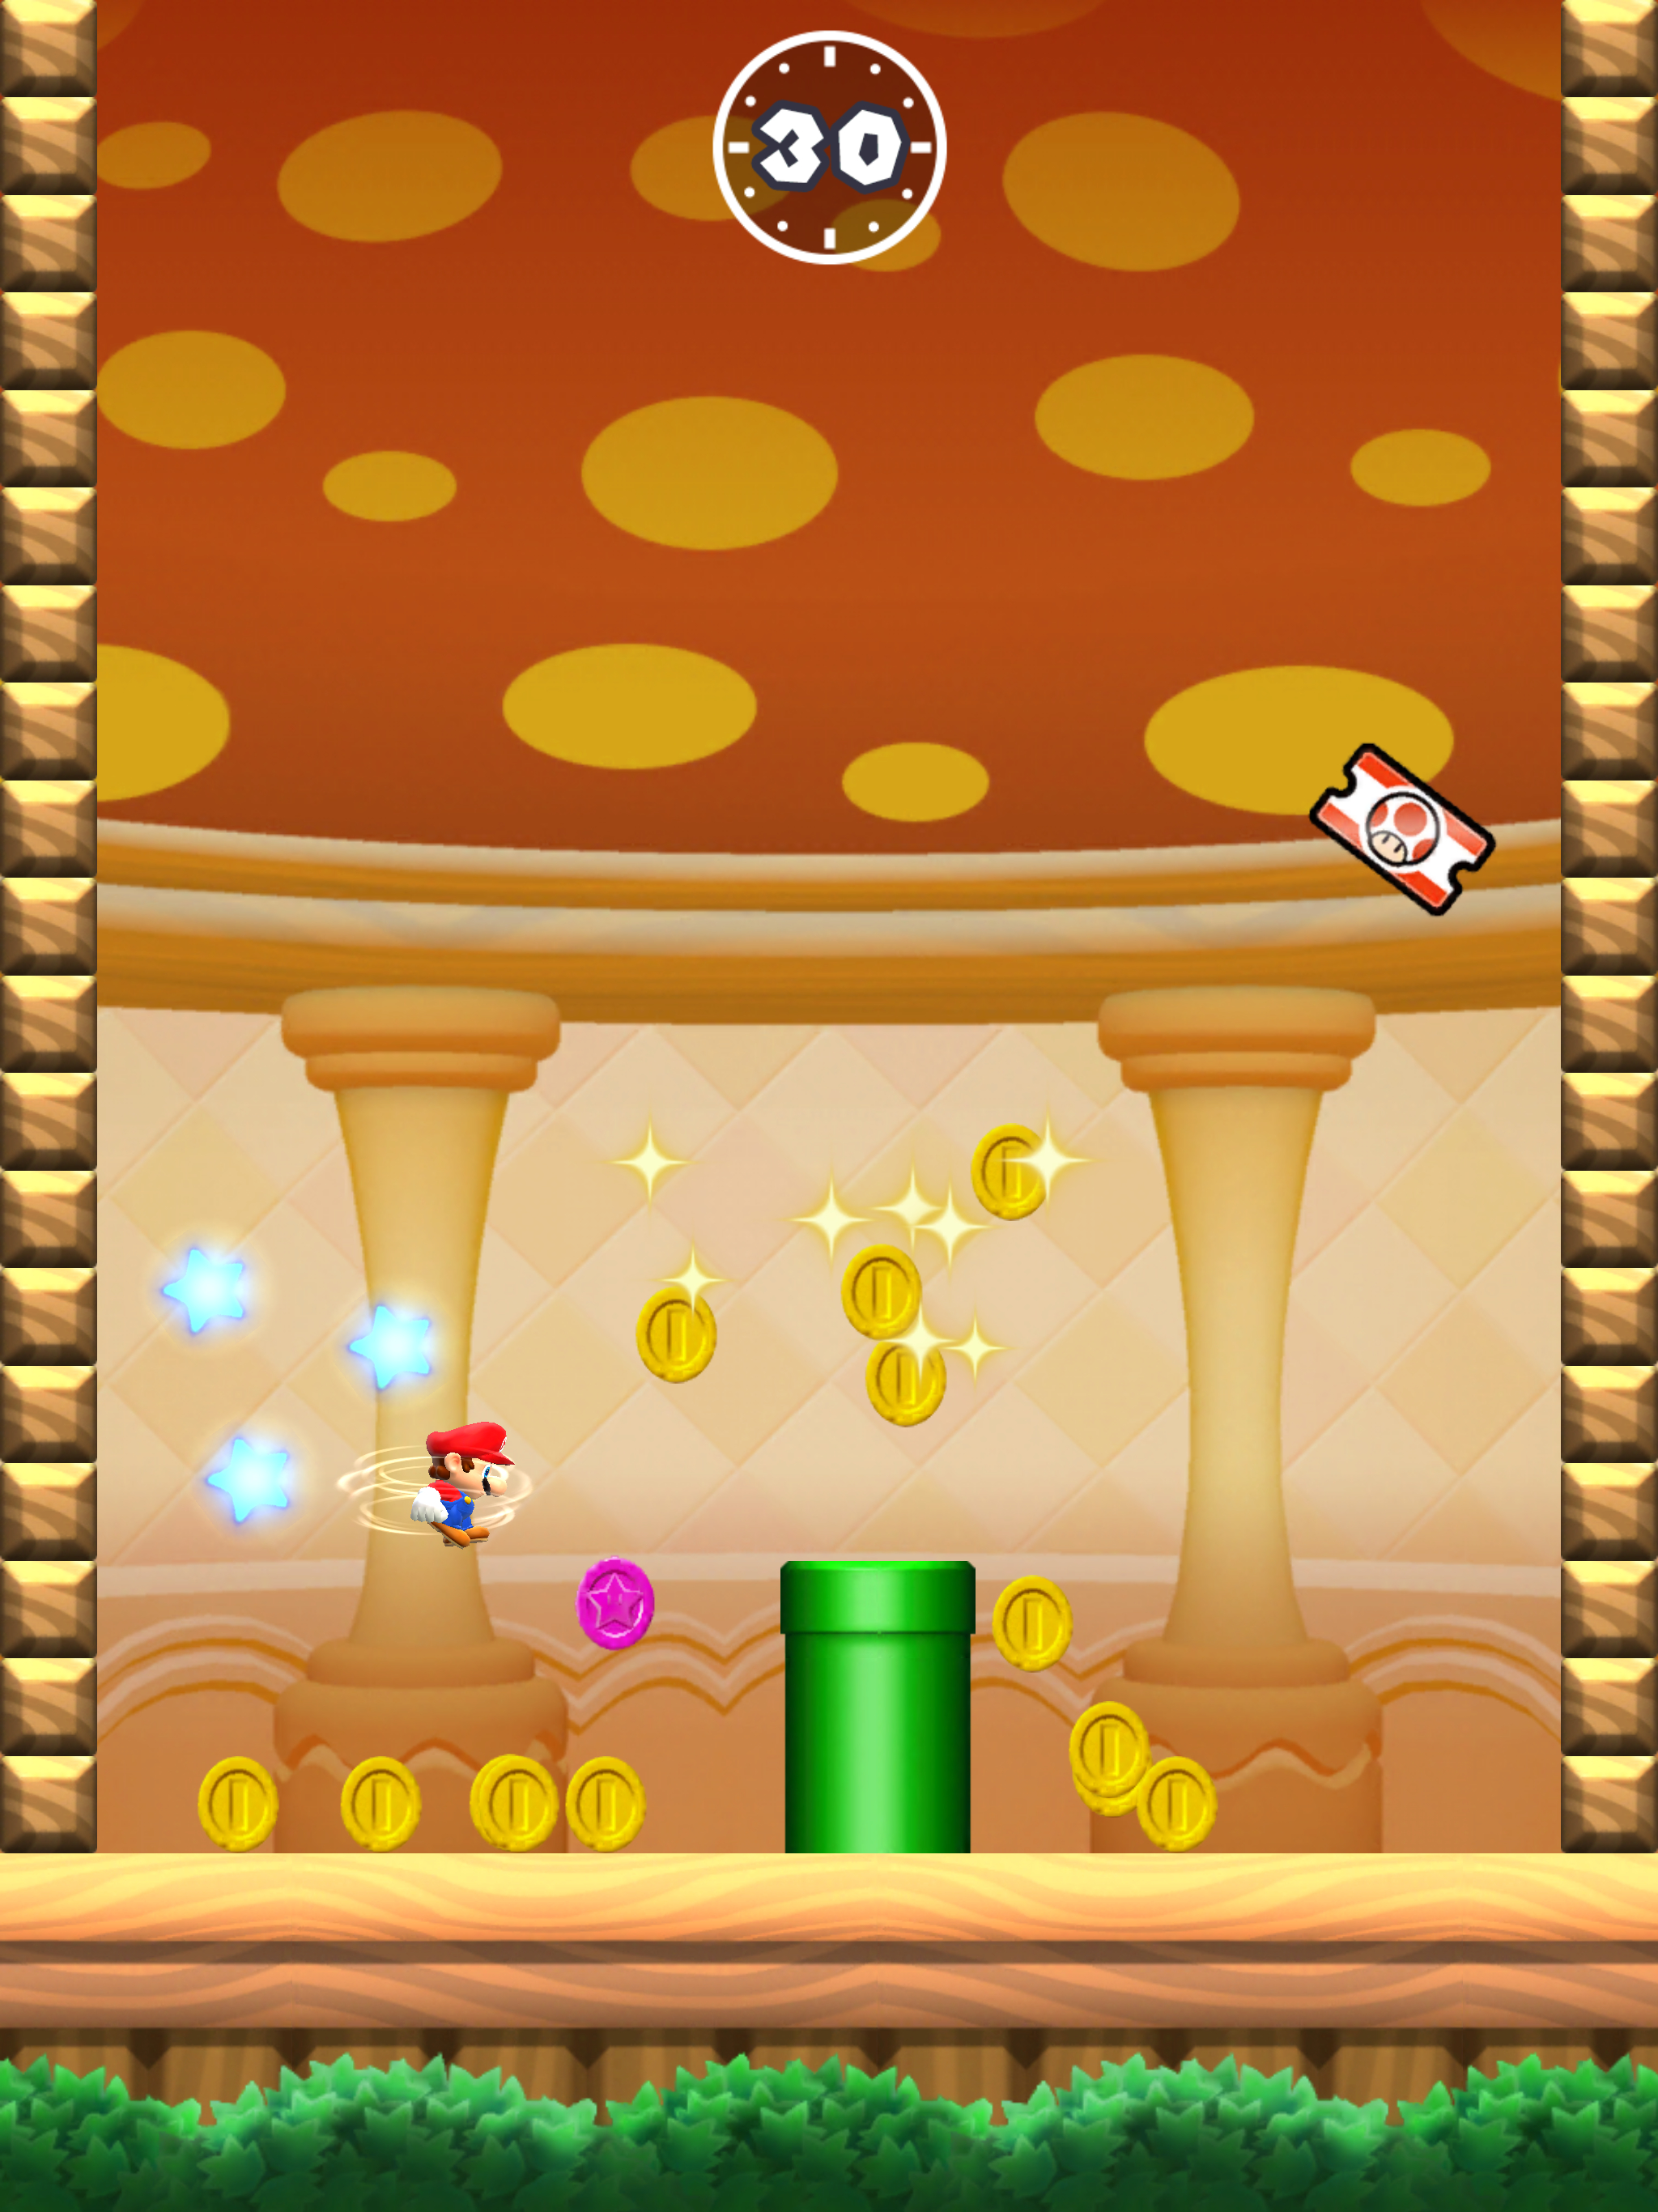 """""""By playing these levels and replaying Super Mario Run, I think people will find a lot of fun just in slight changes to the timing of their taps in order to get all of the colored coins or maximize their score."""""""